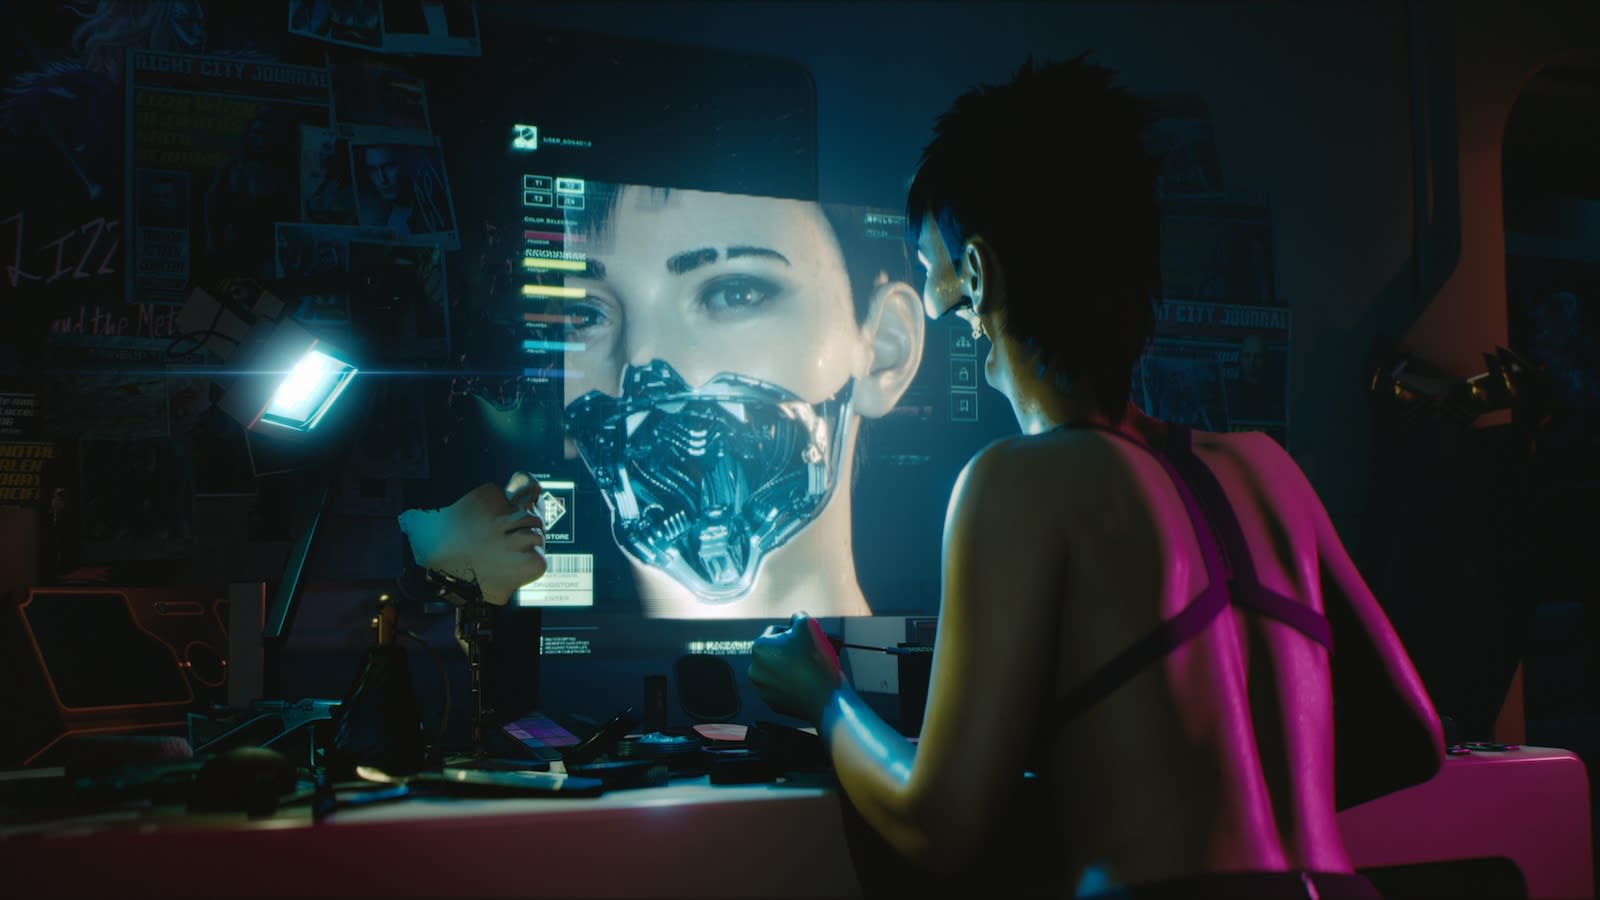 In 'Cyberpunk 2077' you control your own dark, intoxicating